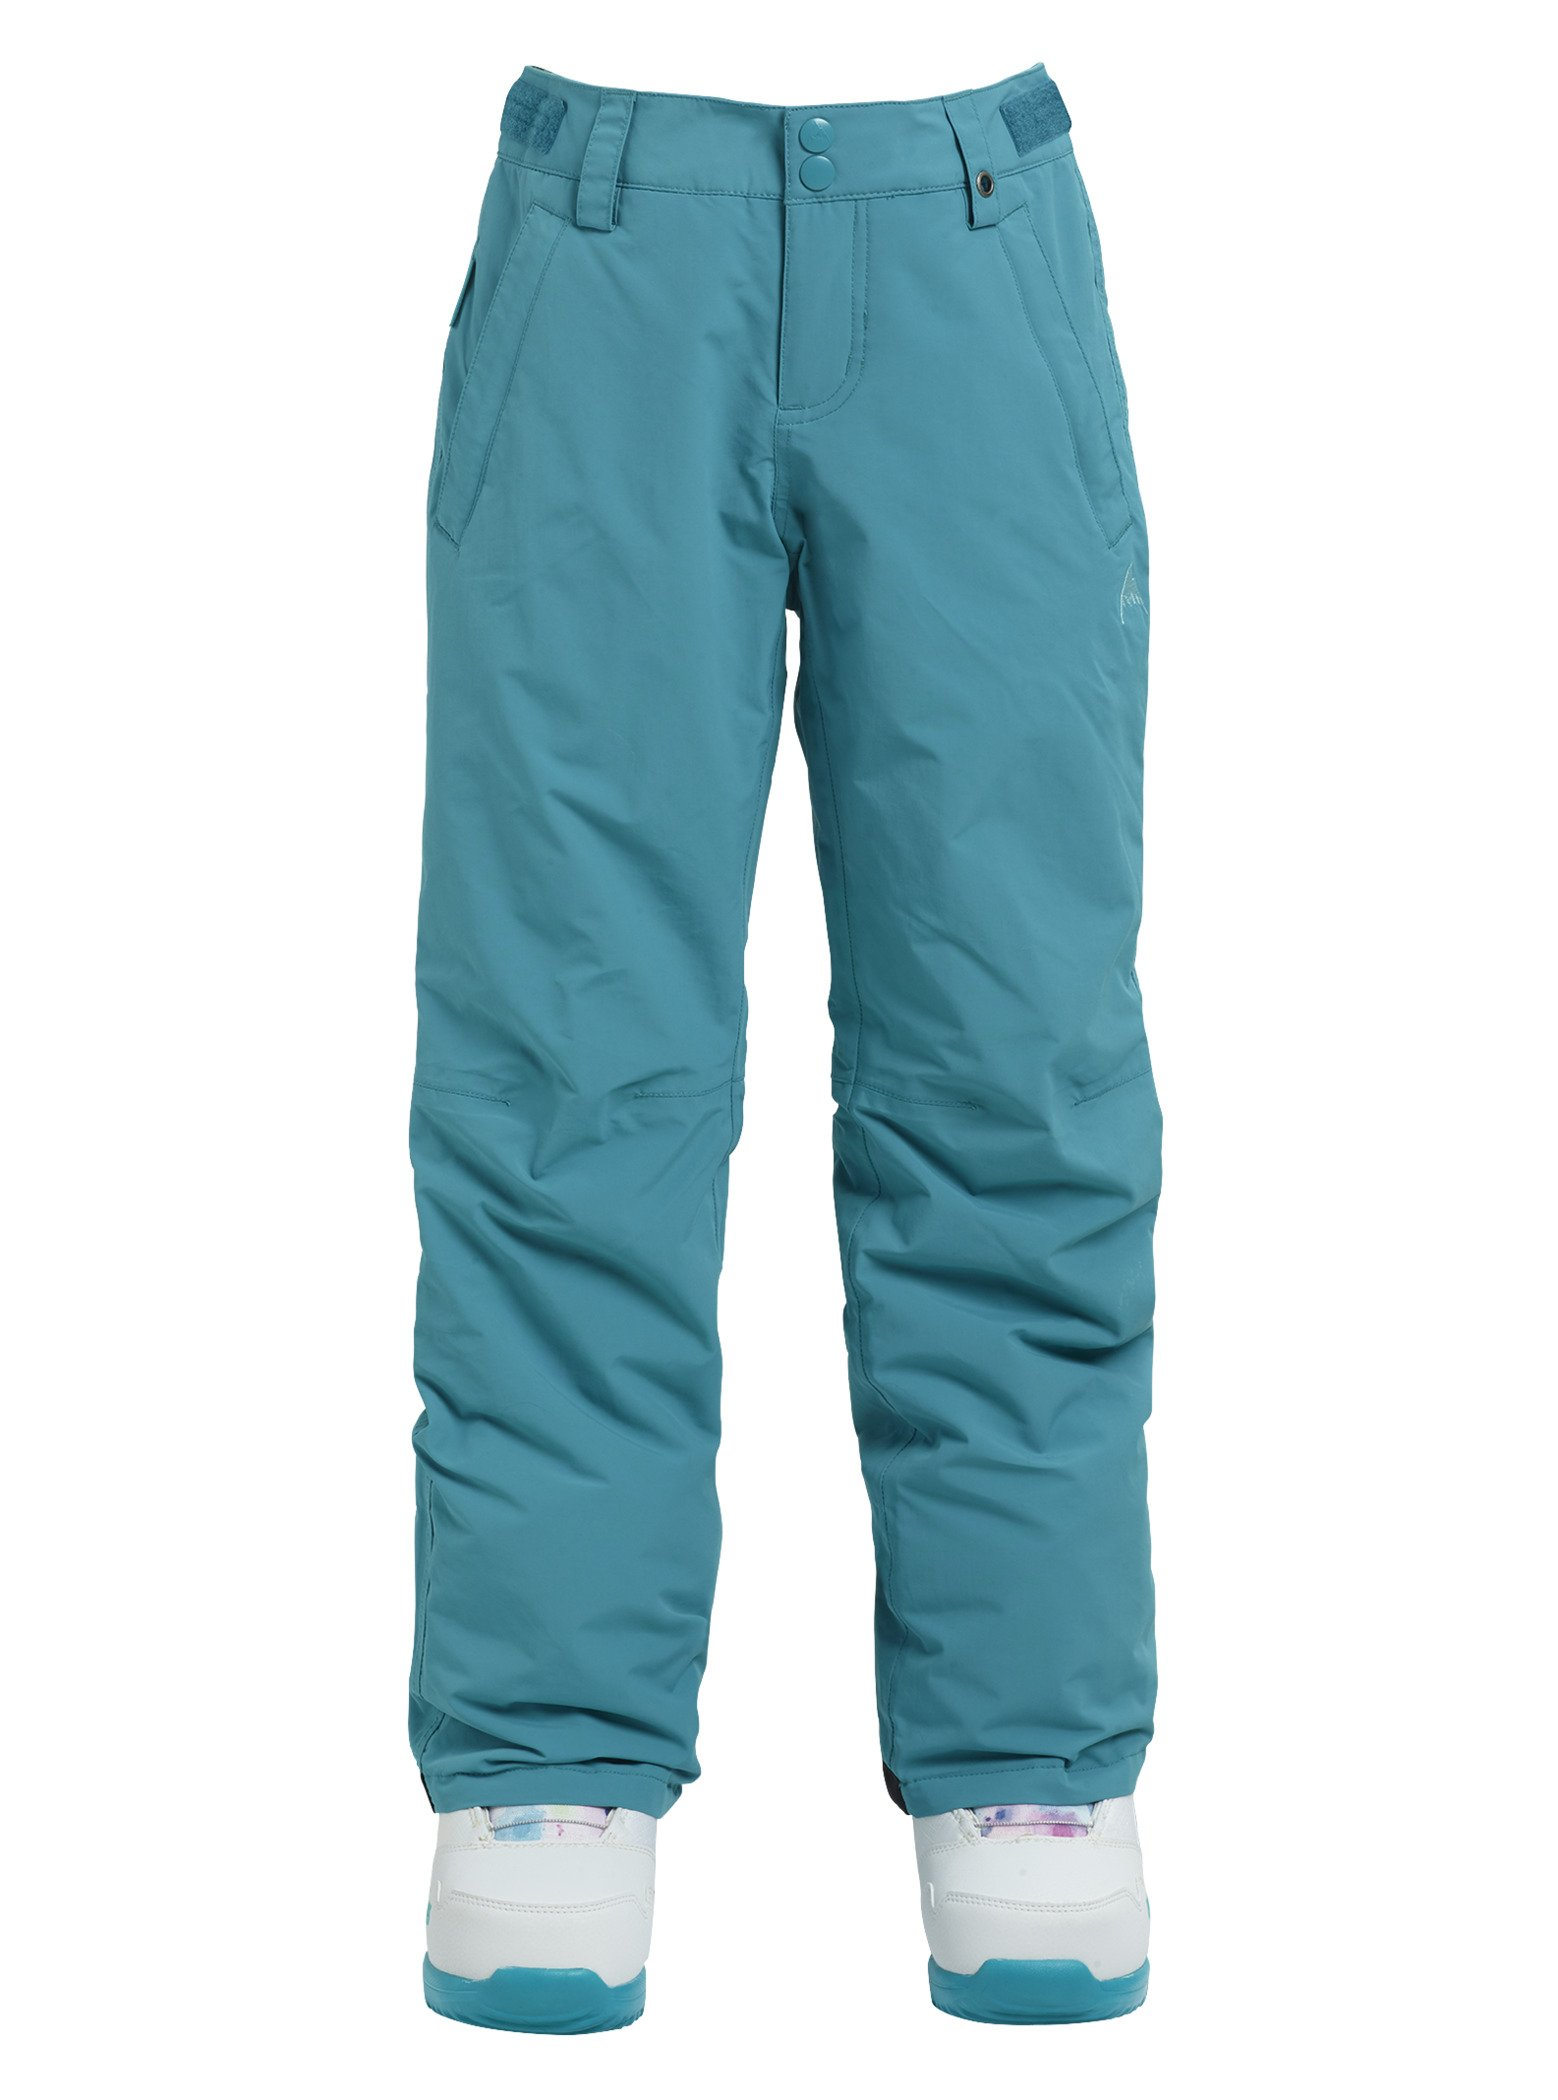 Burton Kids Girls Sweetart Snow Pants Tahoe Size Large by Burton